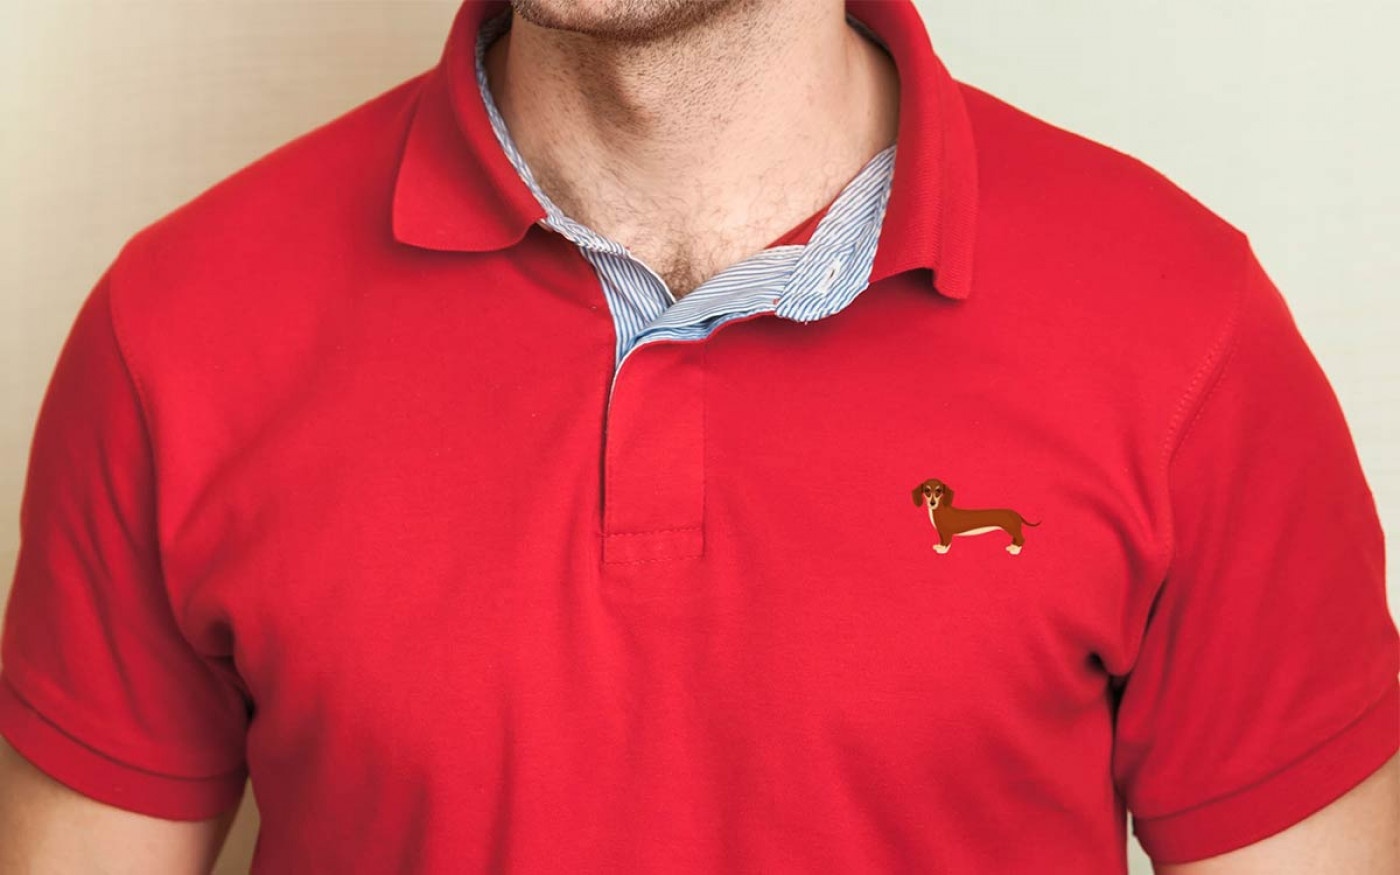 polo design ideas, design inspiration for polo shirts